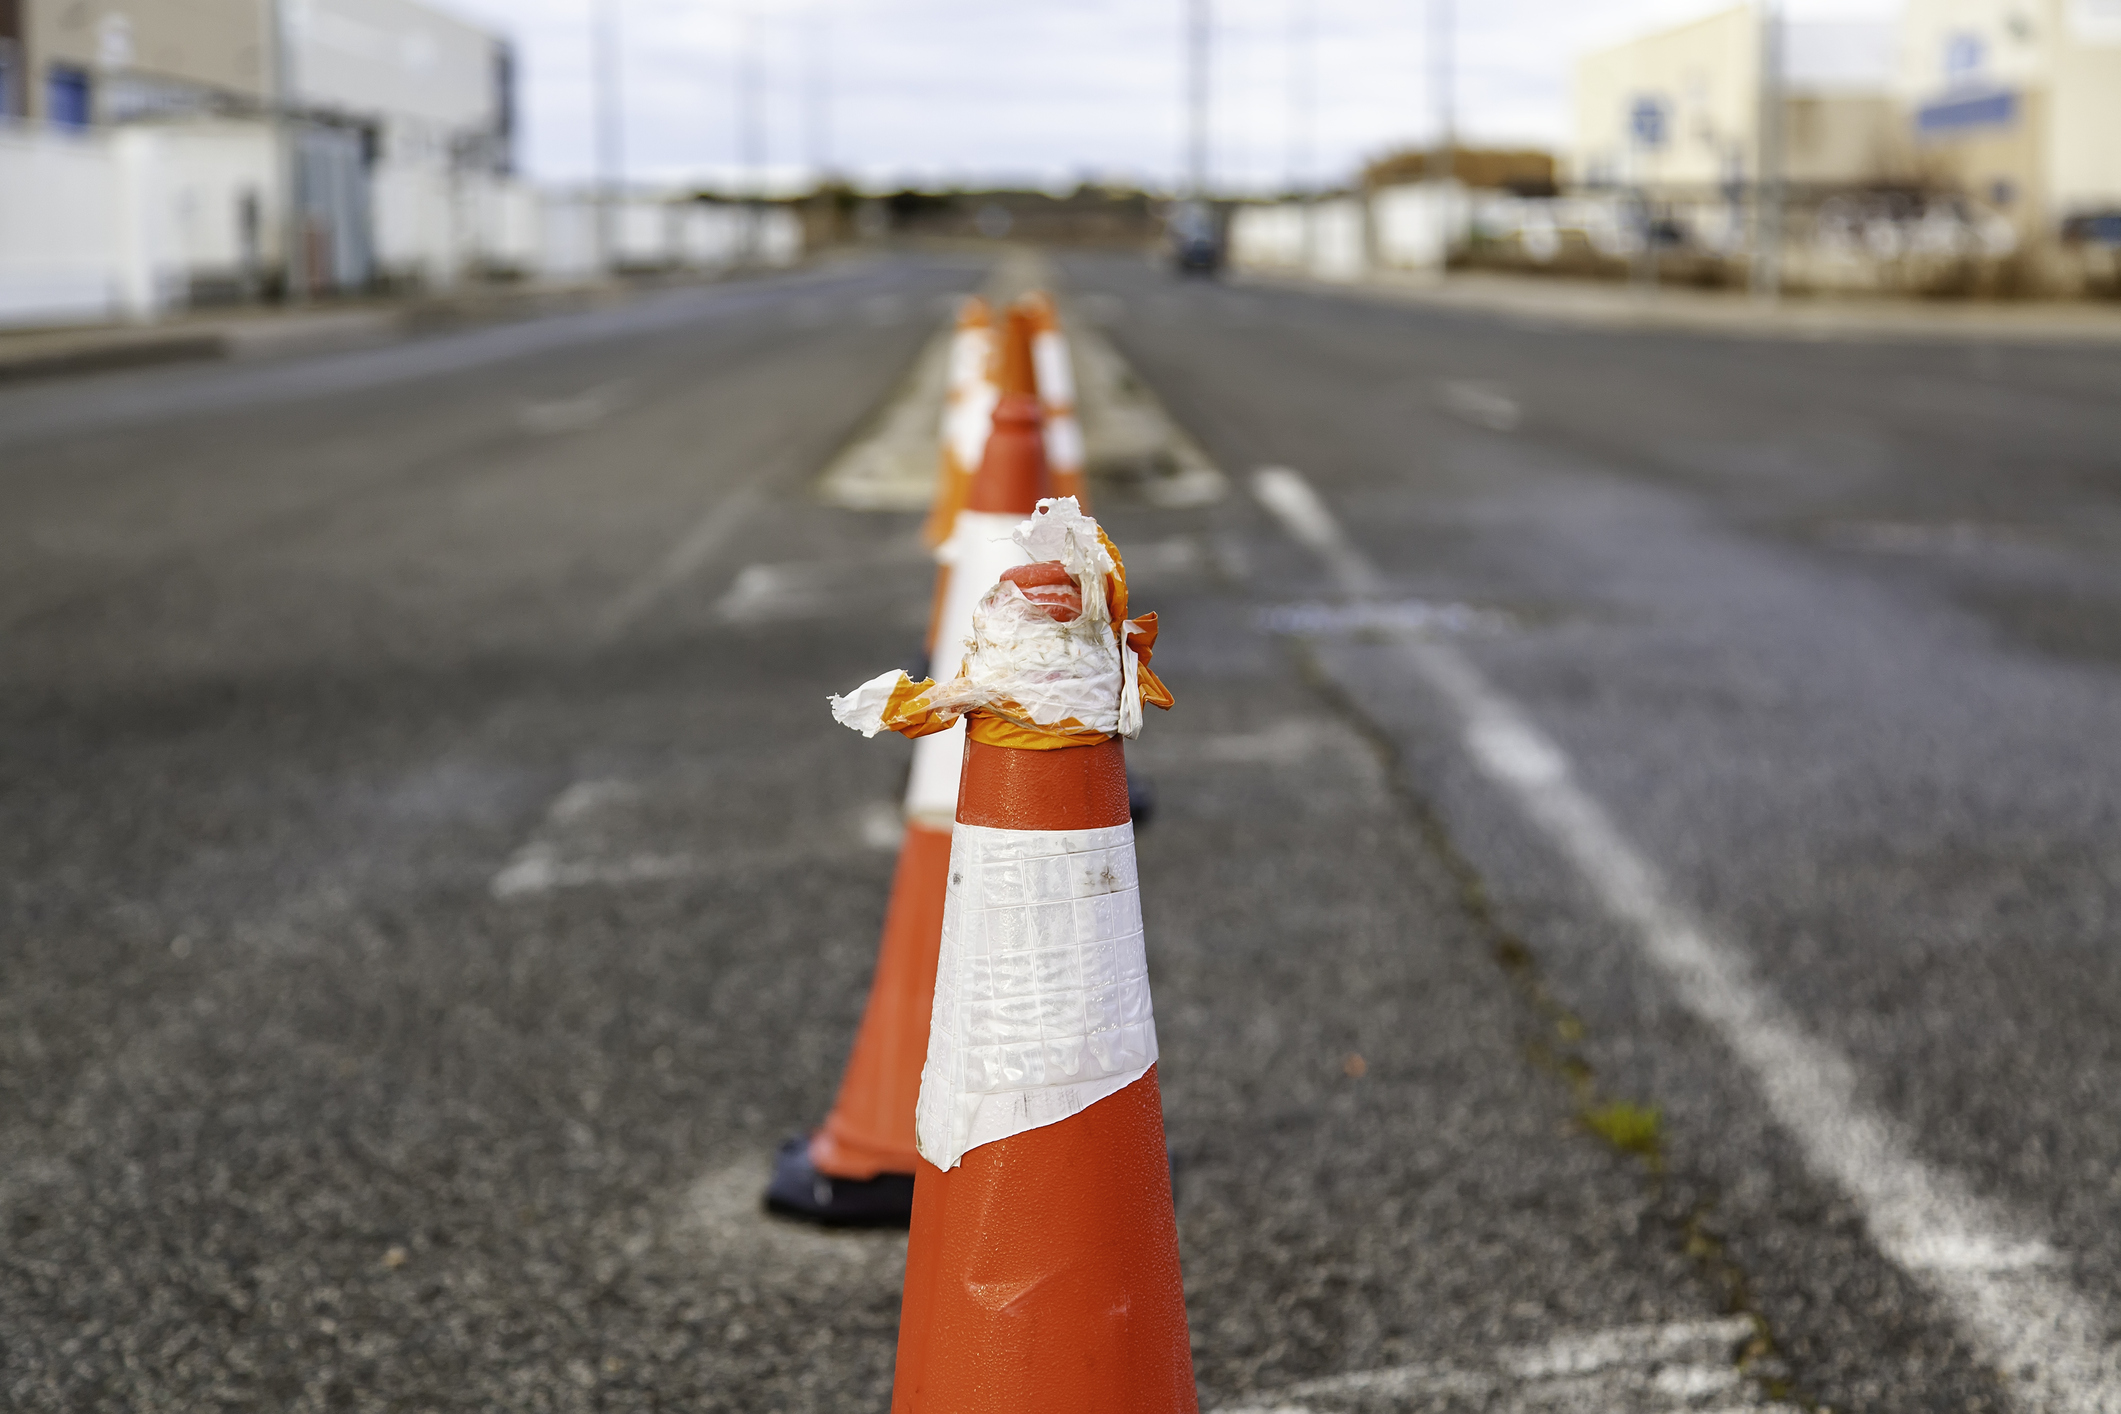 road hazard cones, car accident on construction site